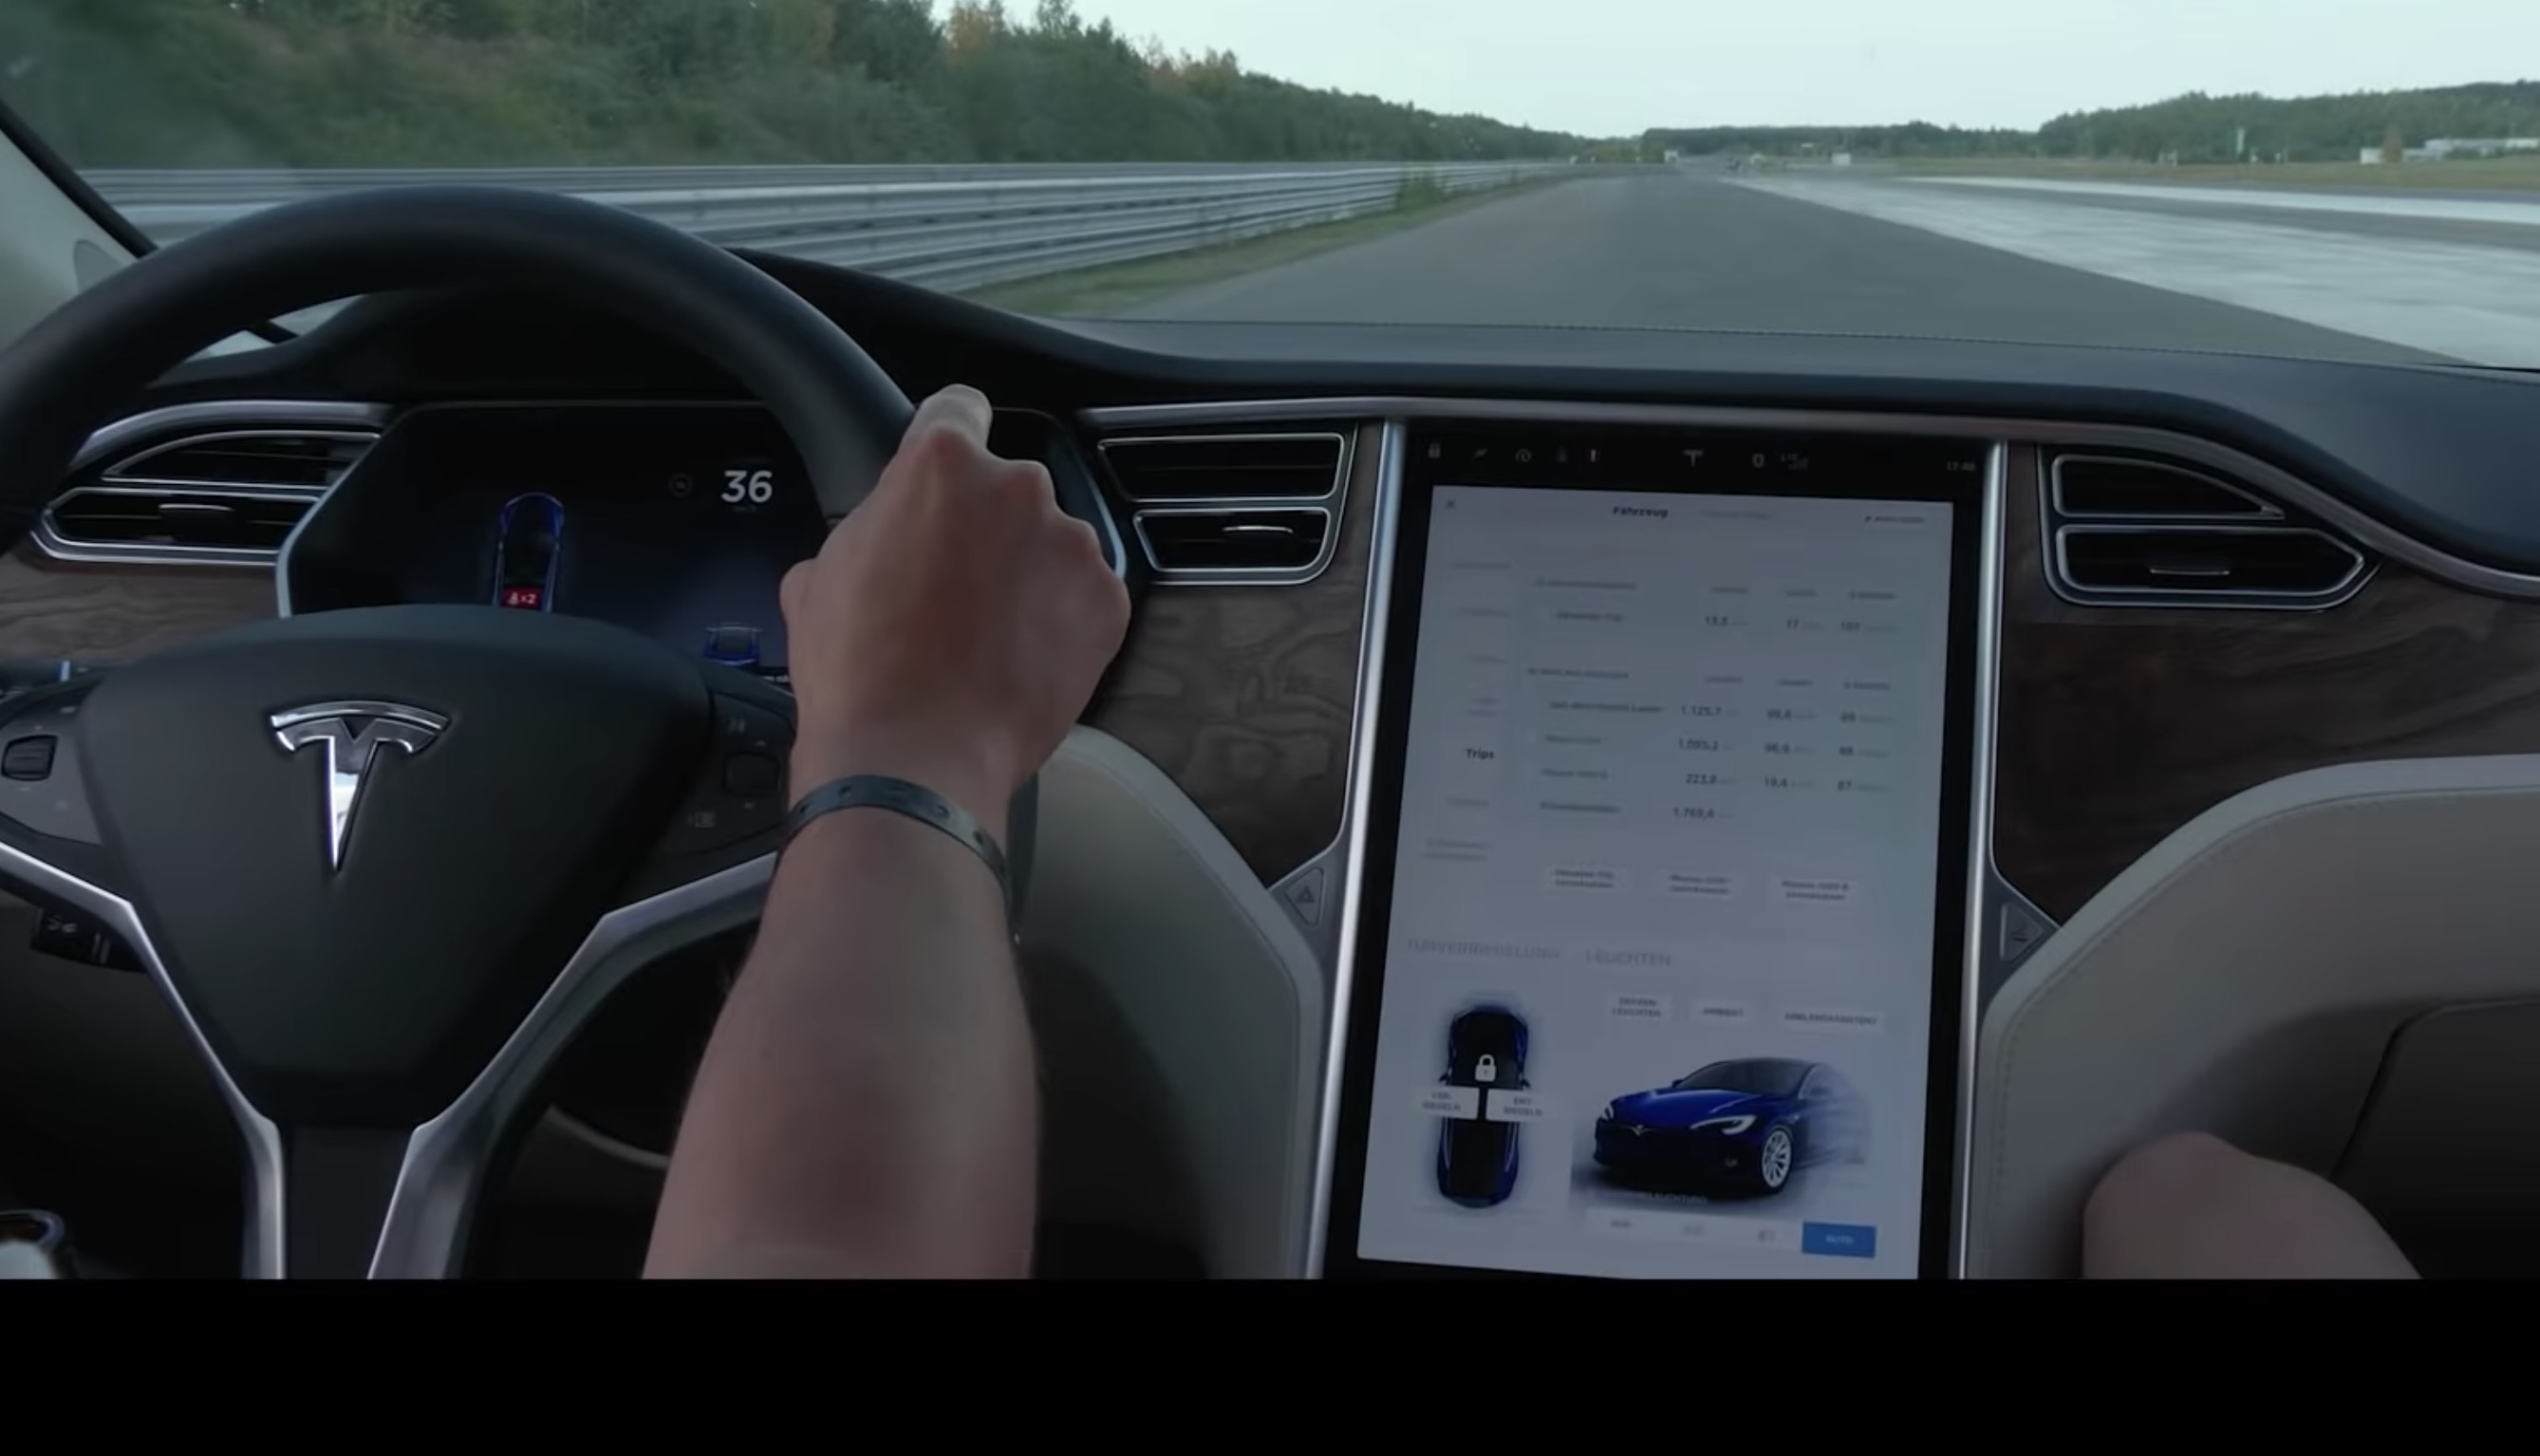 Tesla Model S 3 Set Hypermile Records 701 Mi 1128 Km And 623 1001 Respectively